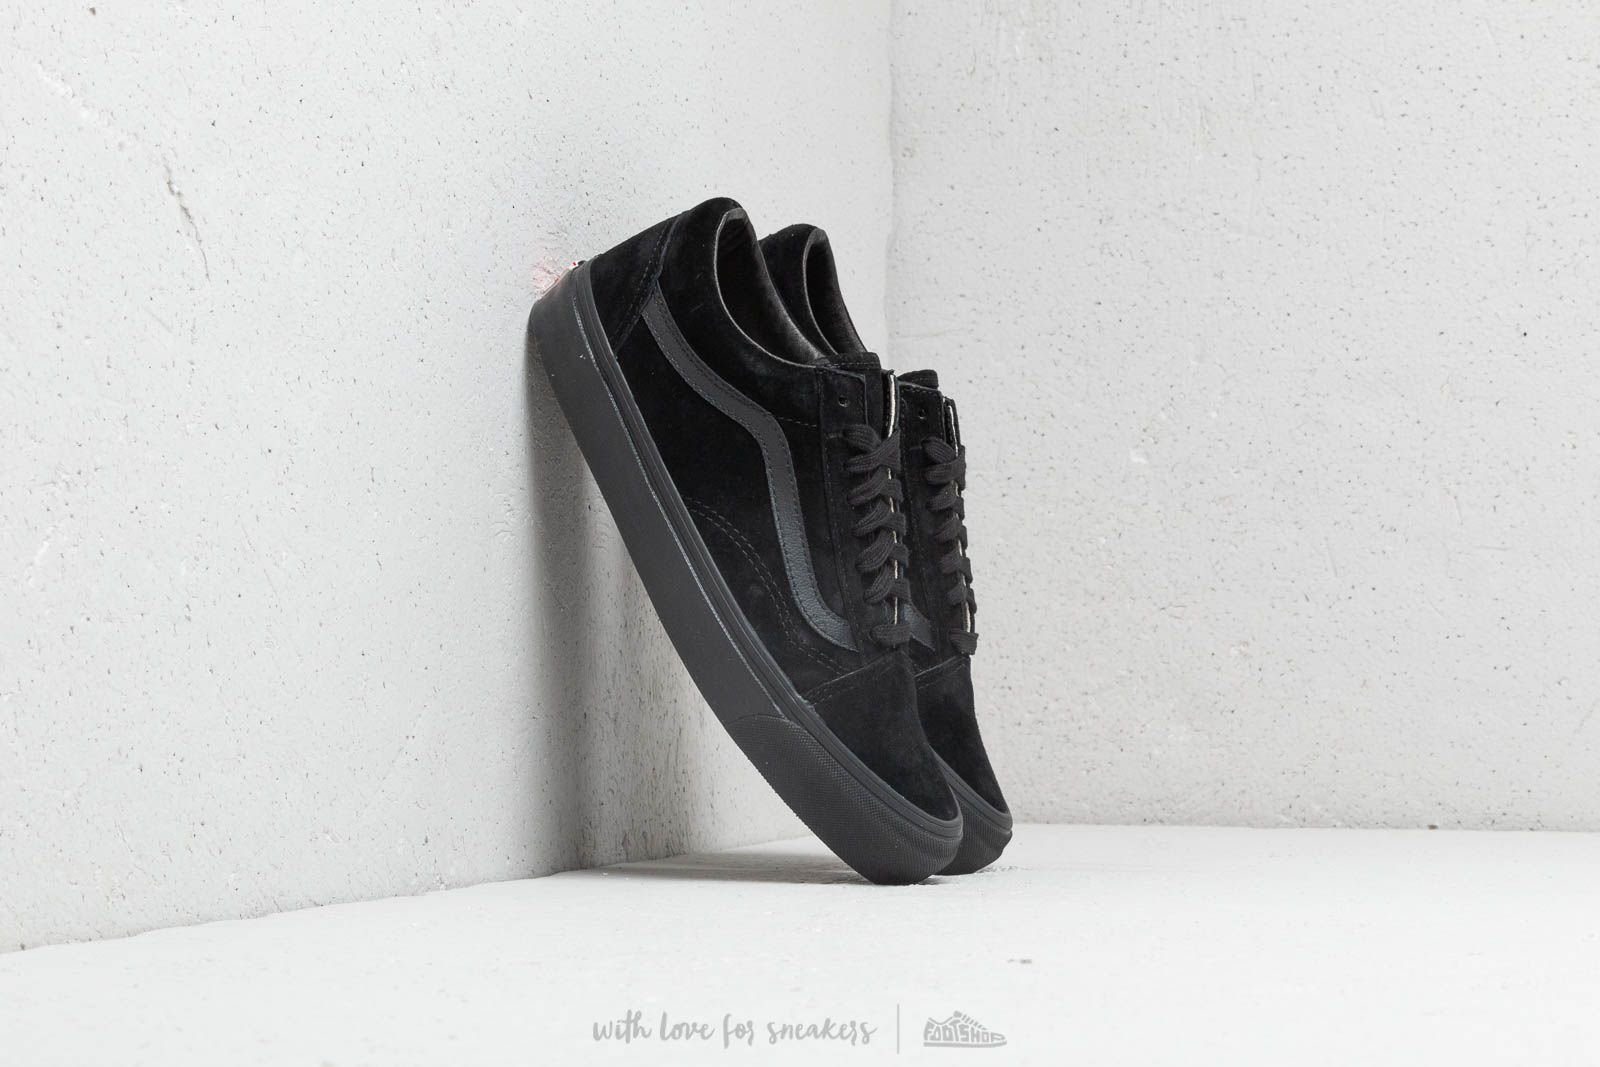 69caa1ec6cf9 Vans OG Old Skool LX (Leather  Suede) Black at a great price 83